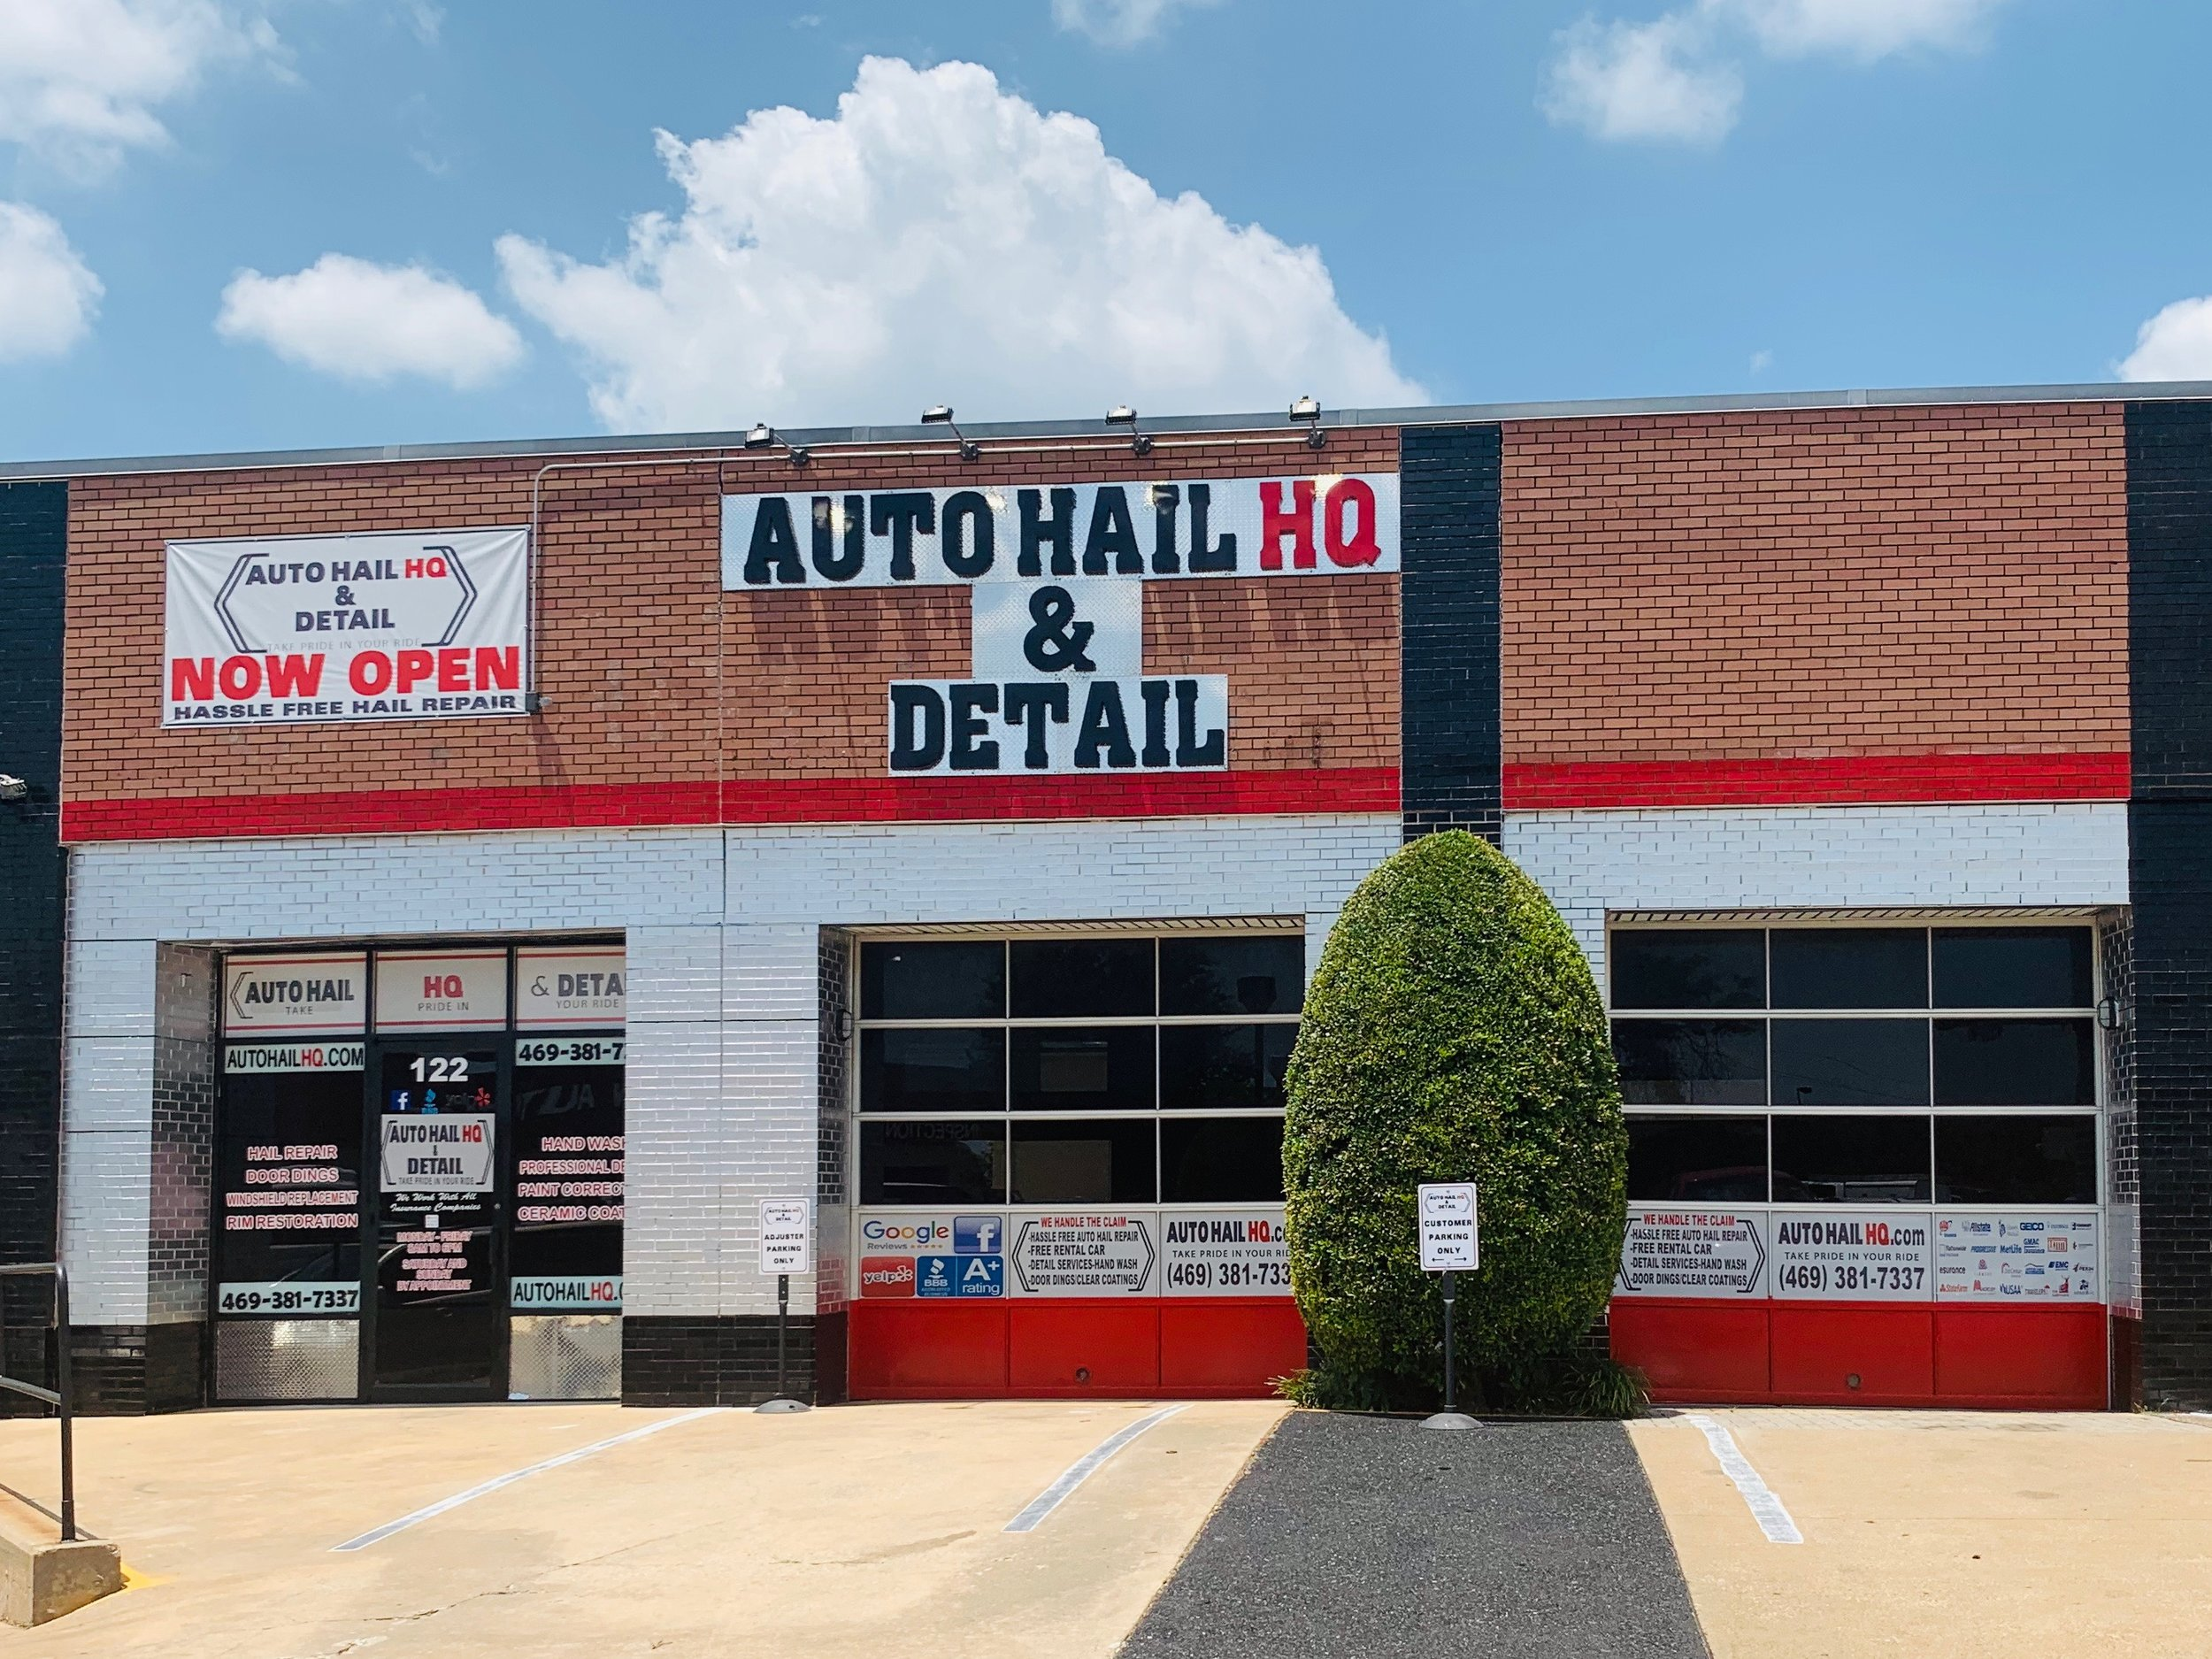 Auto Hail HQ is the leading auto hail restoration and detail company serving N. Texas and Oklahoma City markets.